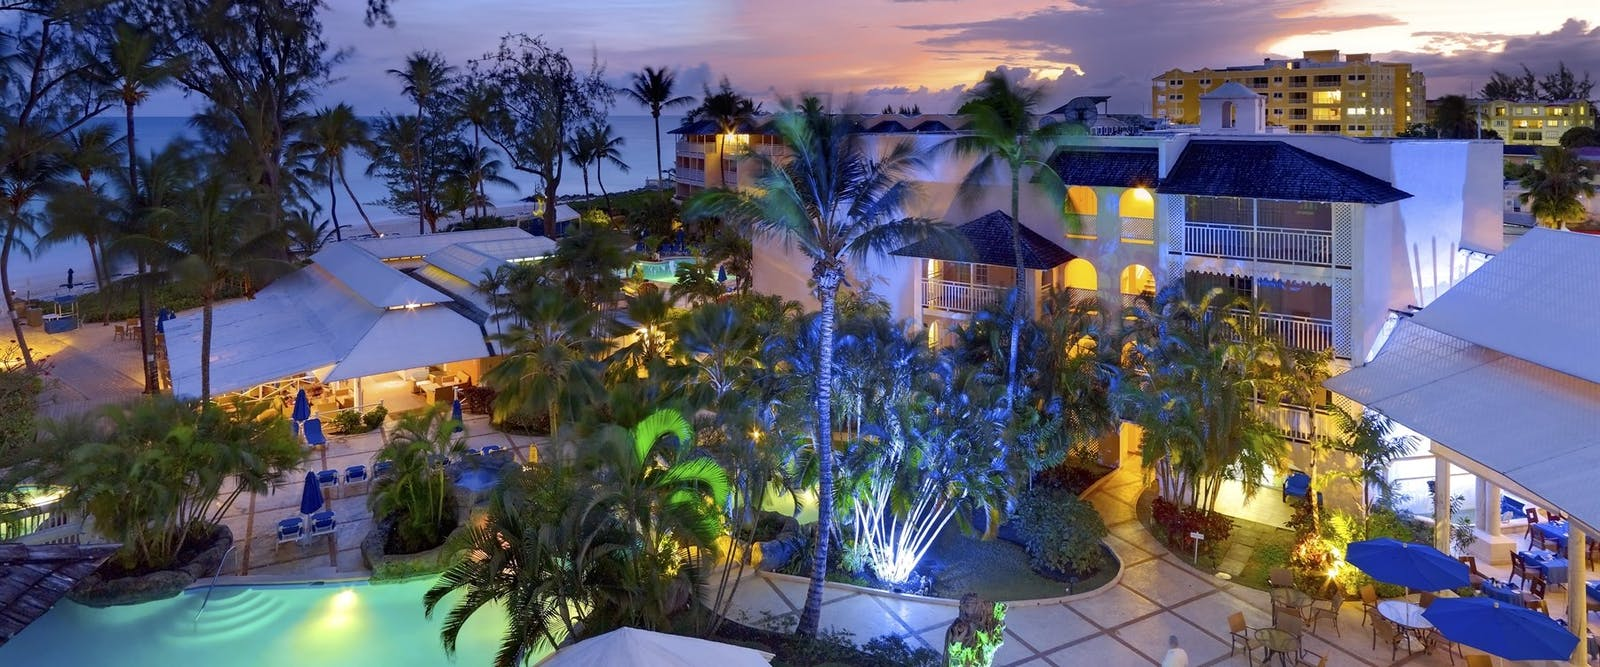 Sunset at Turtle Beach Resort by Elegant Hotels, Barbados